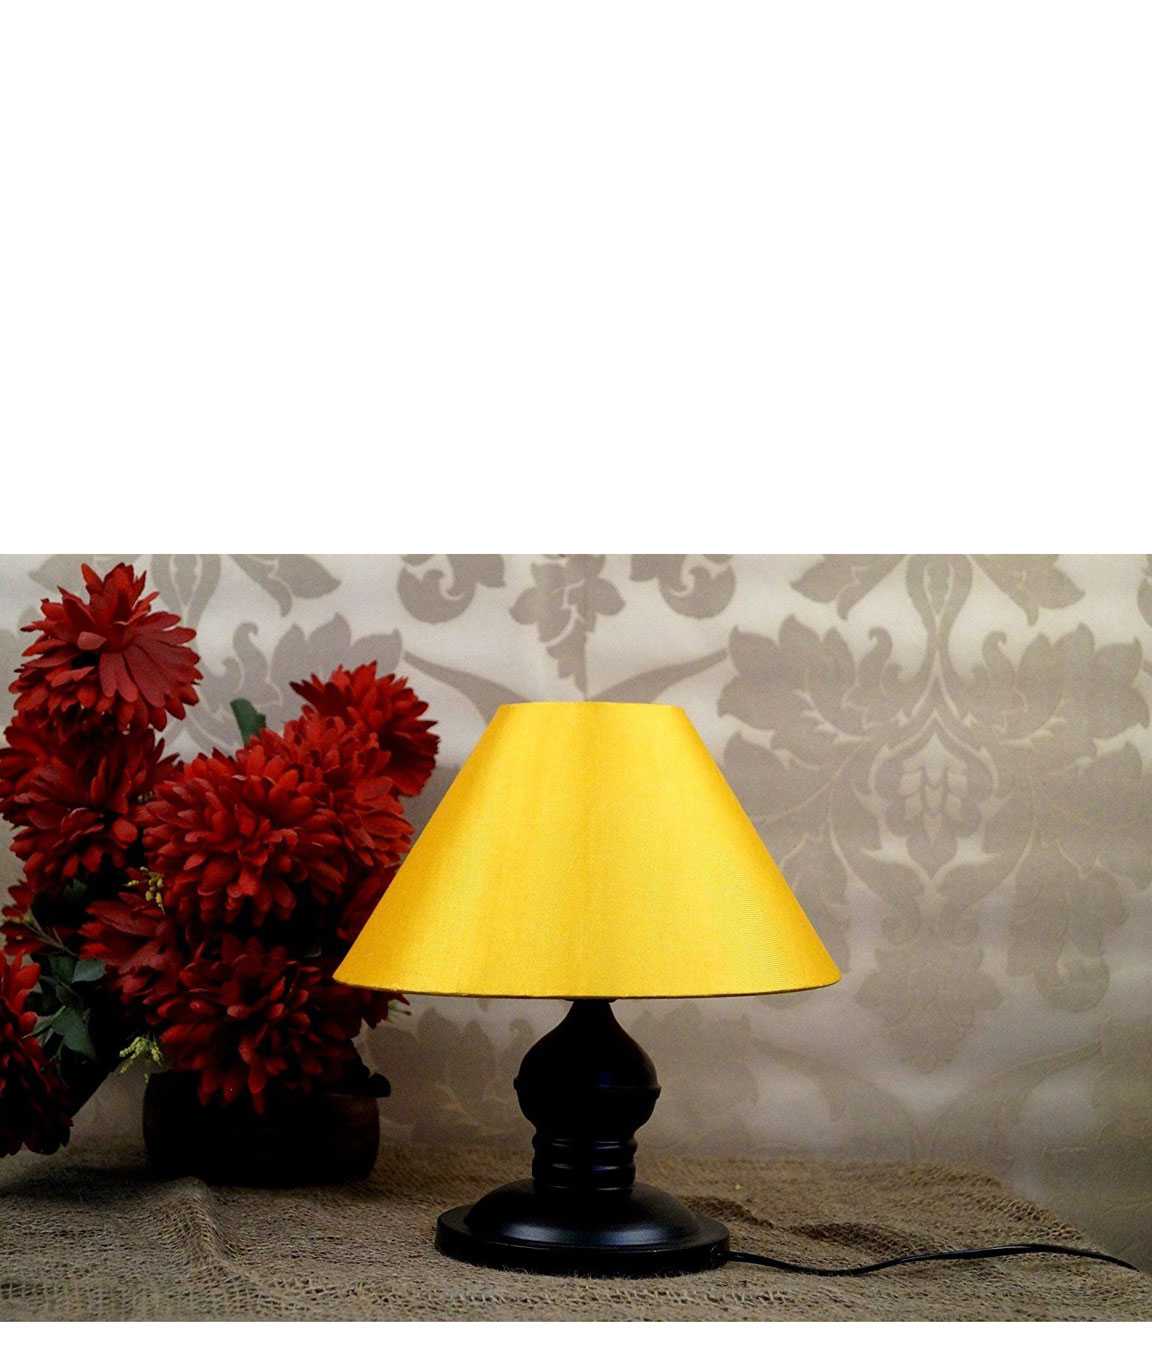 RDC Black Designer Table Lamp with 10 Inches Round Plain Yellow Lamp Shade